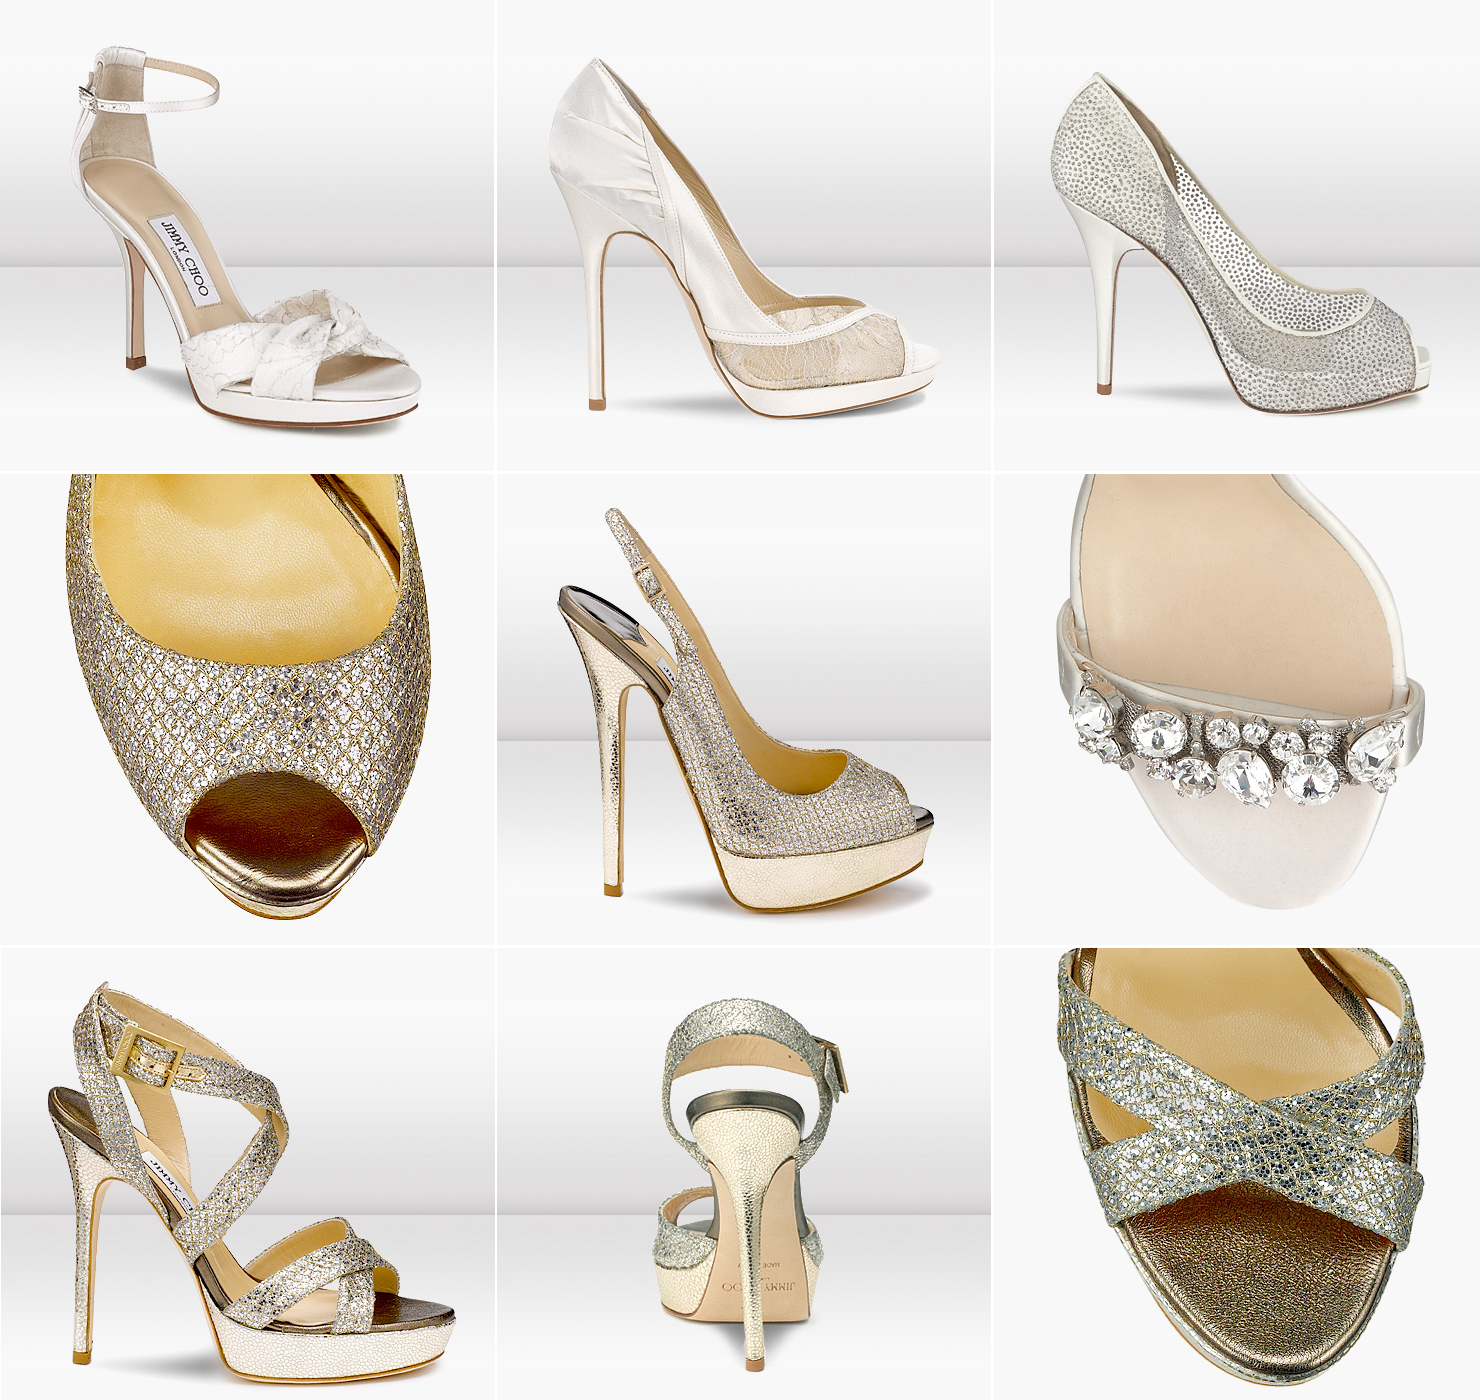 Jimmy-choo-wedding-shoes-sparkly-gold-silver-bridal-heels.original